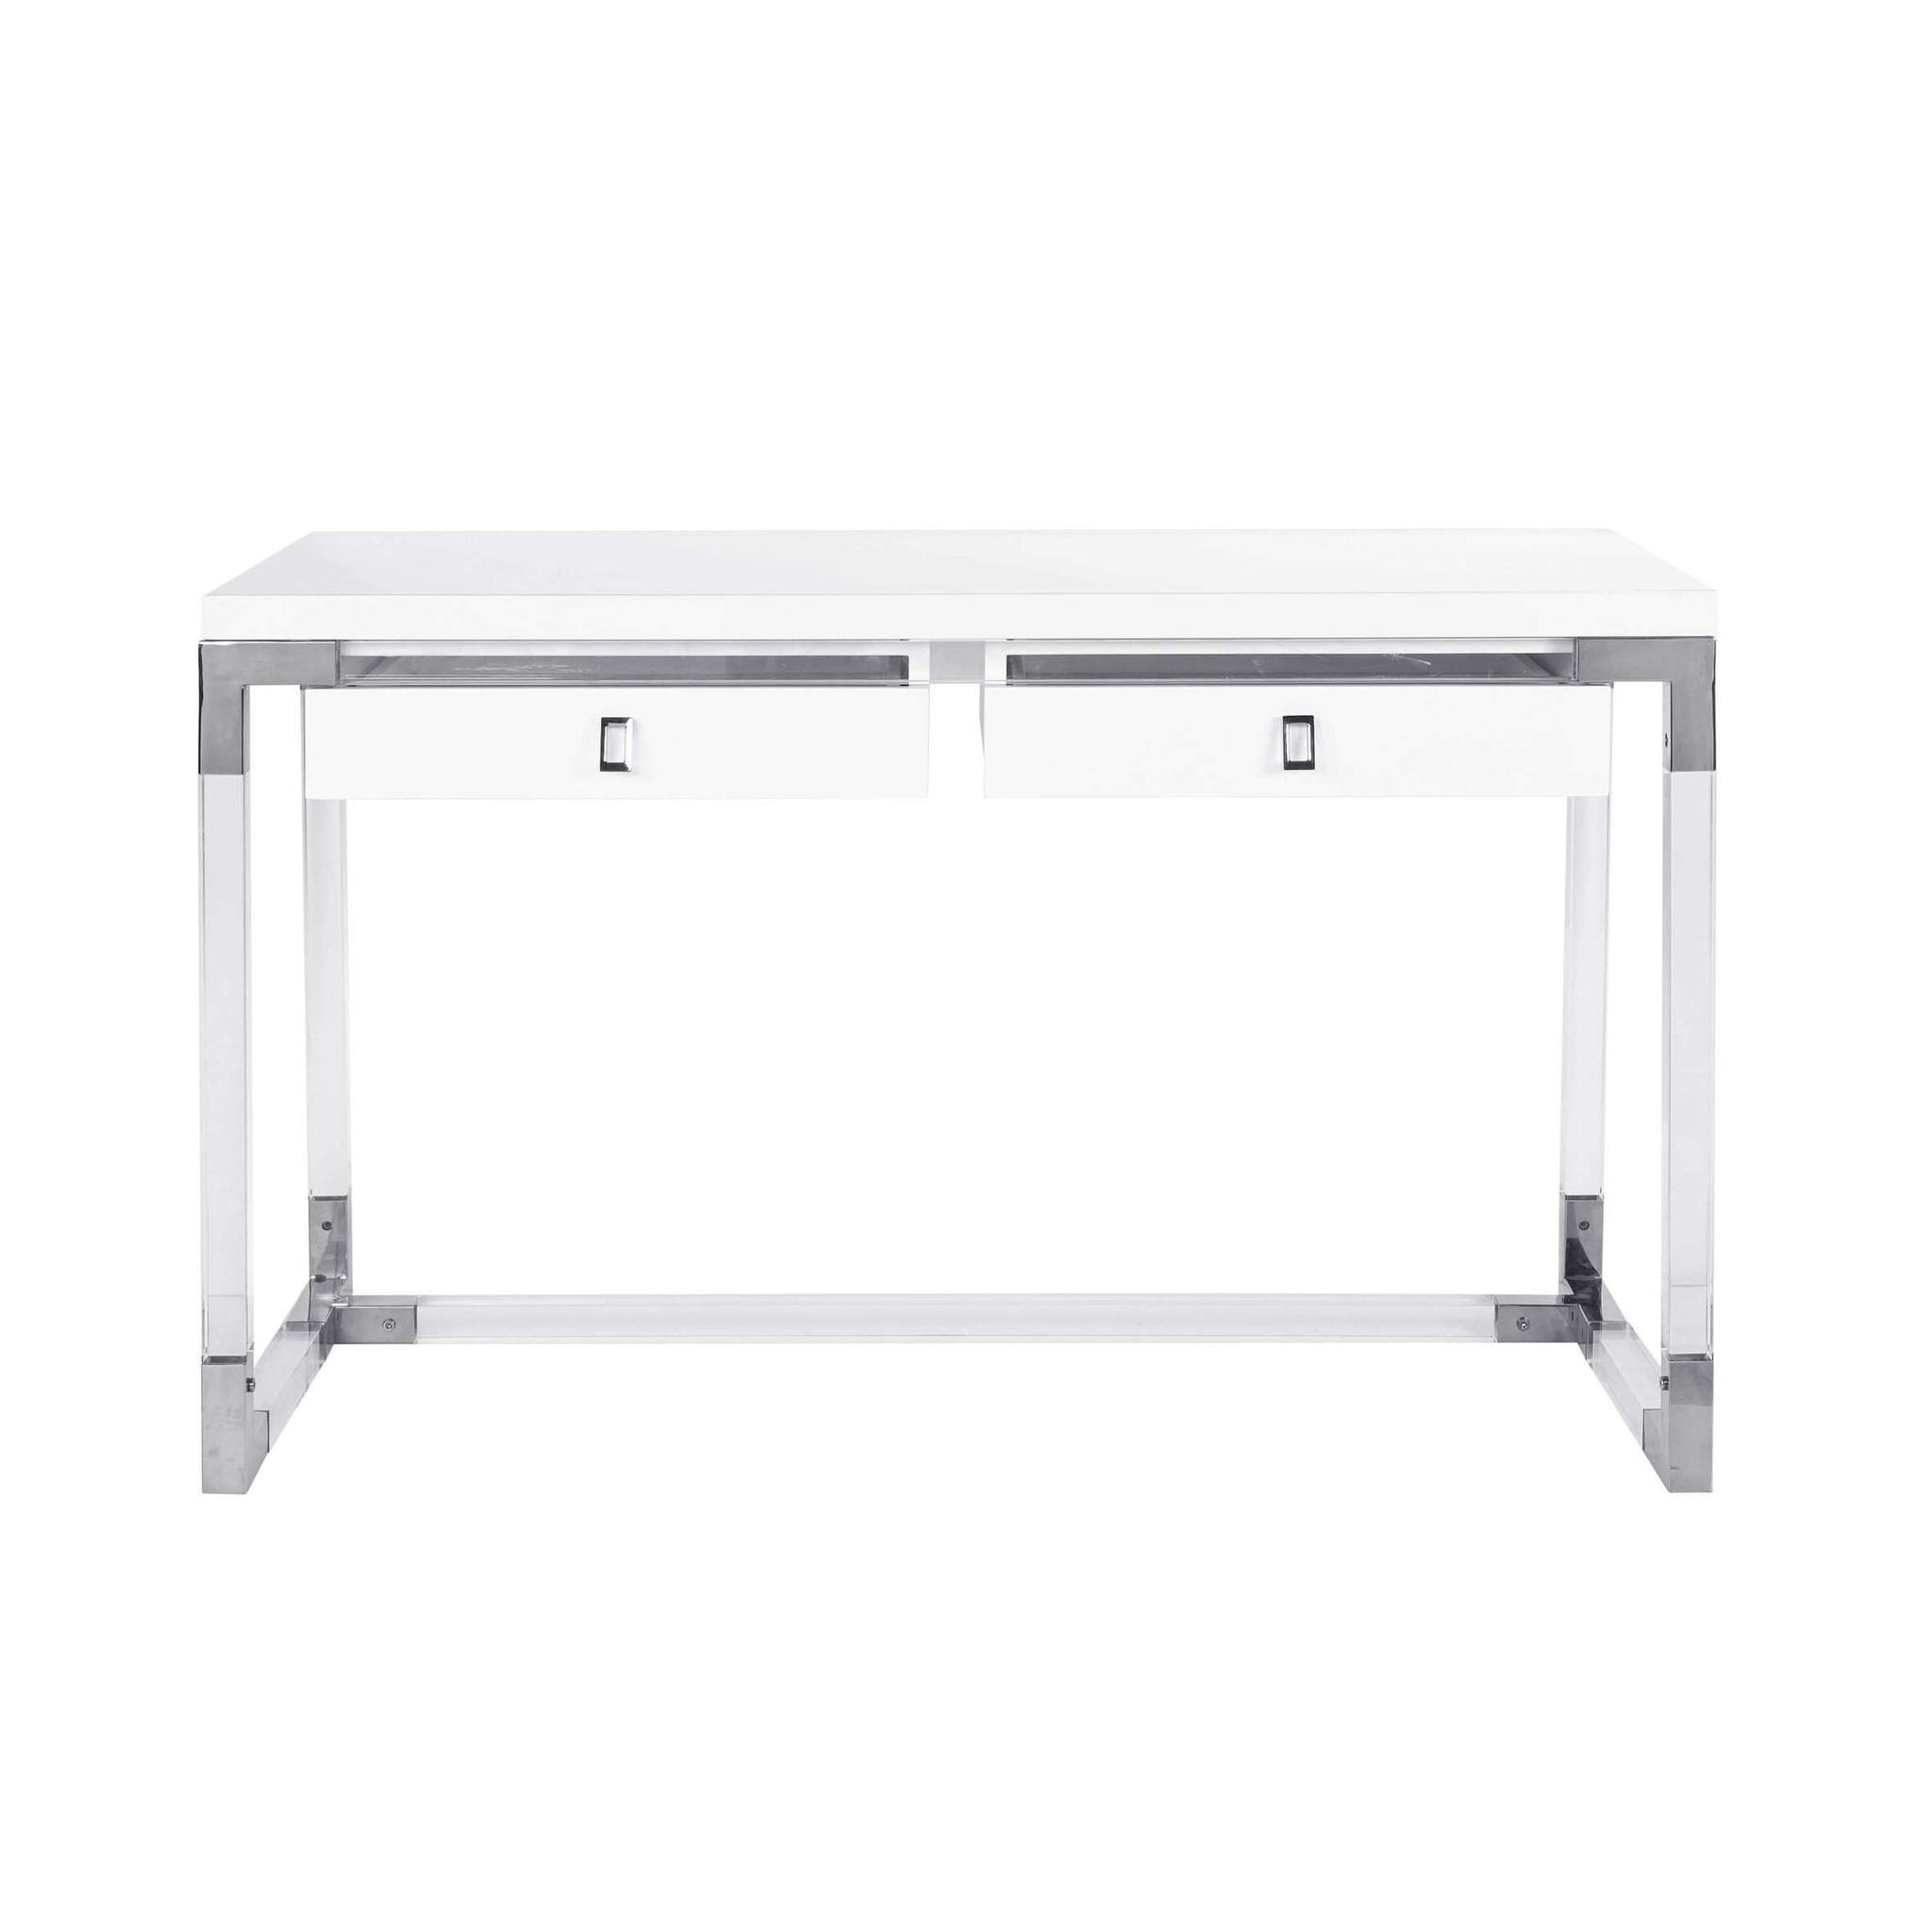 luxe glass serving cart wheels rug and more manhattan white lacquer desk accent table tables globe lighting canadian tire patio lamps kmart wilcox furniture set round coffee keter